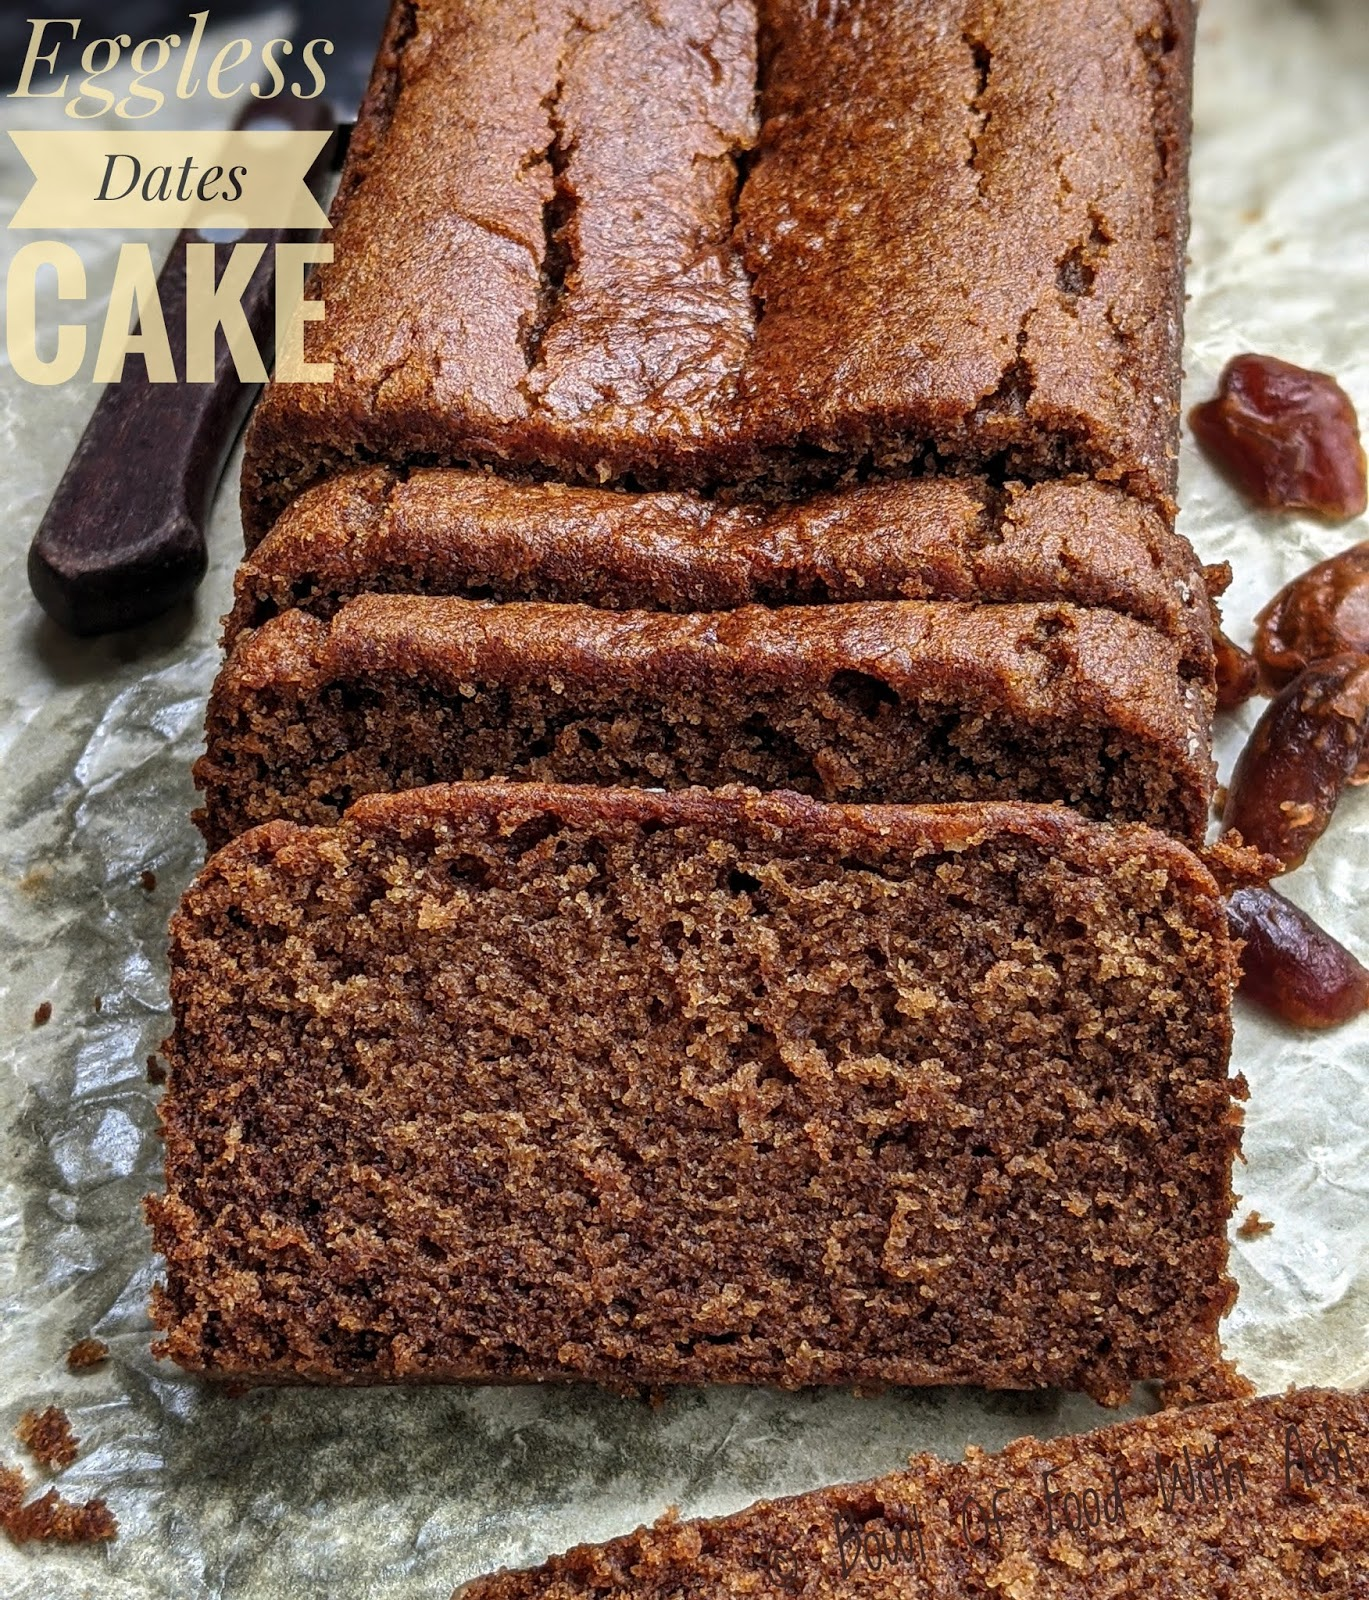 Eggless Dates Cake Recipe | How to make Eggless Dates Cake